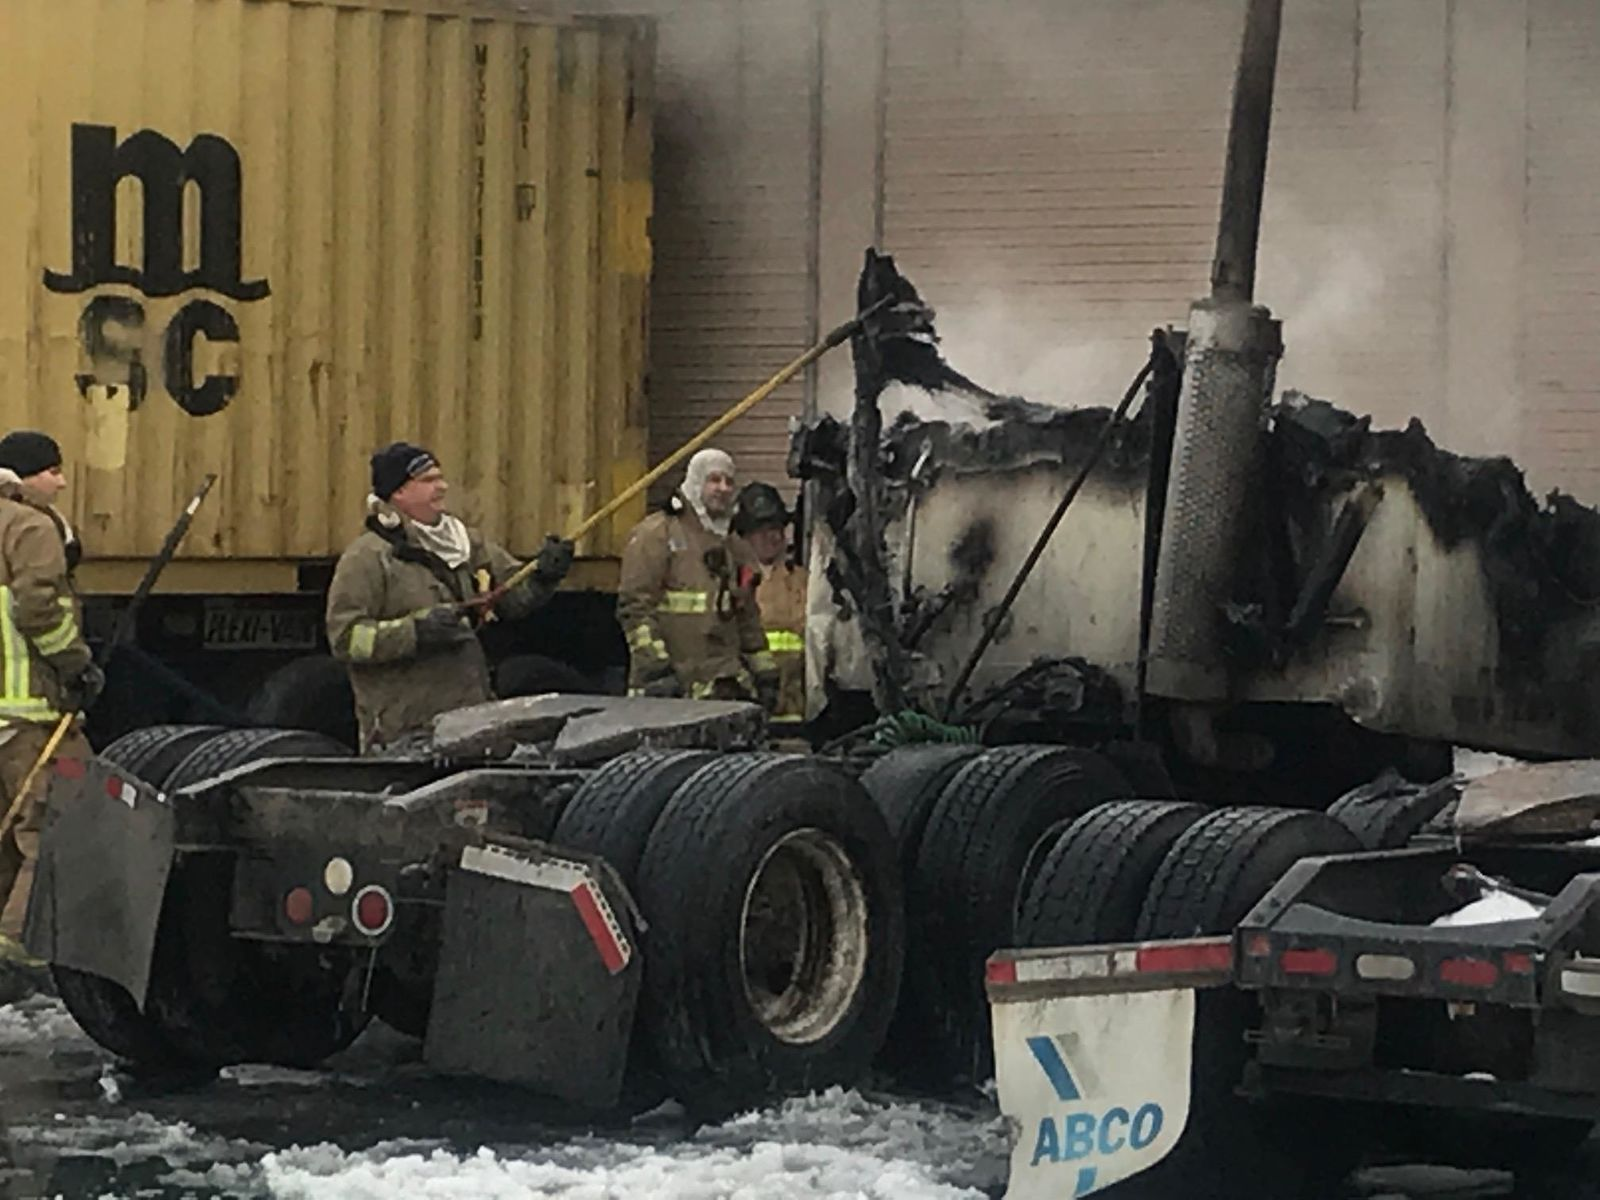 A semi cab caught fire at a building off Fisher Road Tuesday morning Jan. 22, 2019. (WSYX/WTTE)